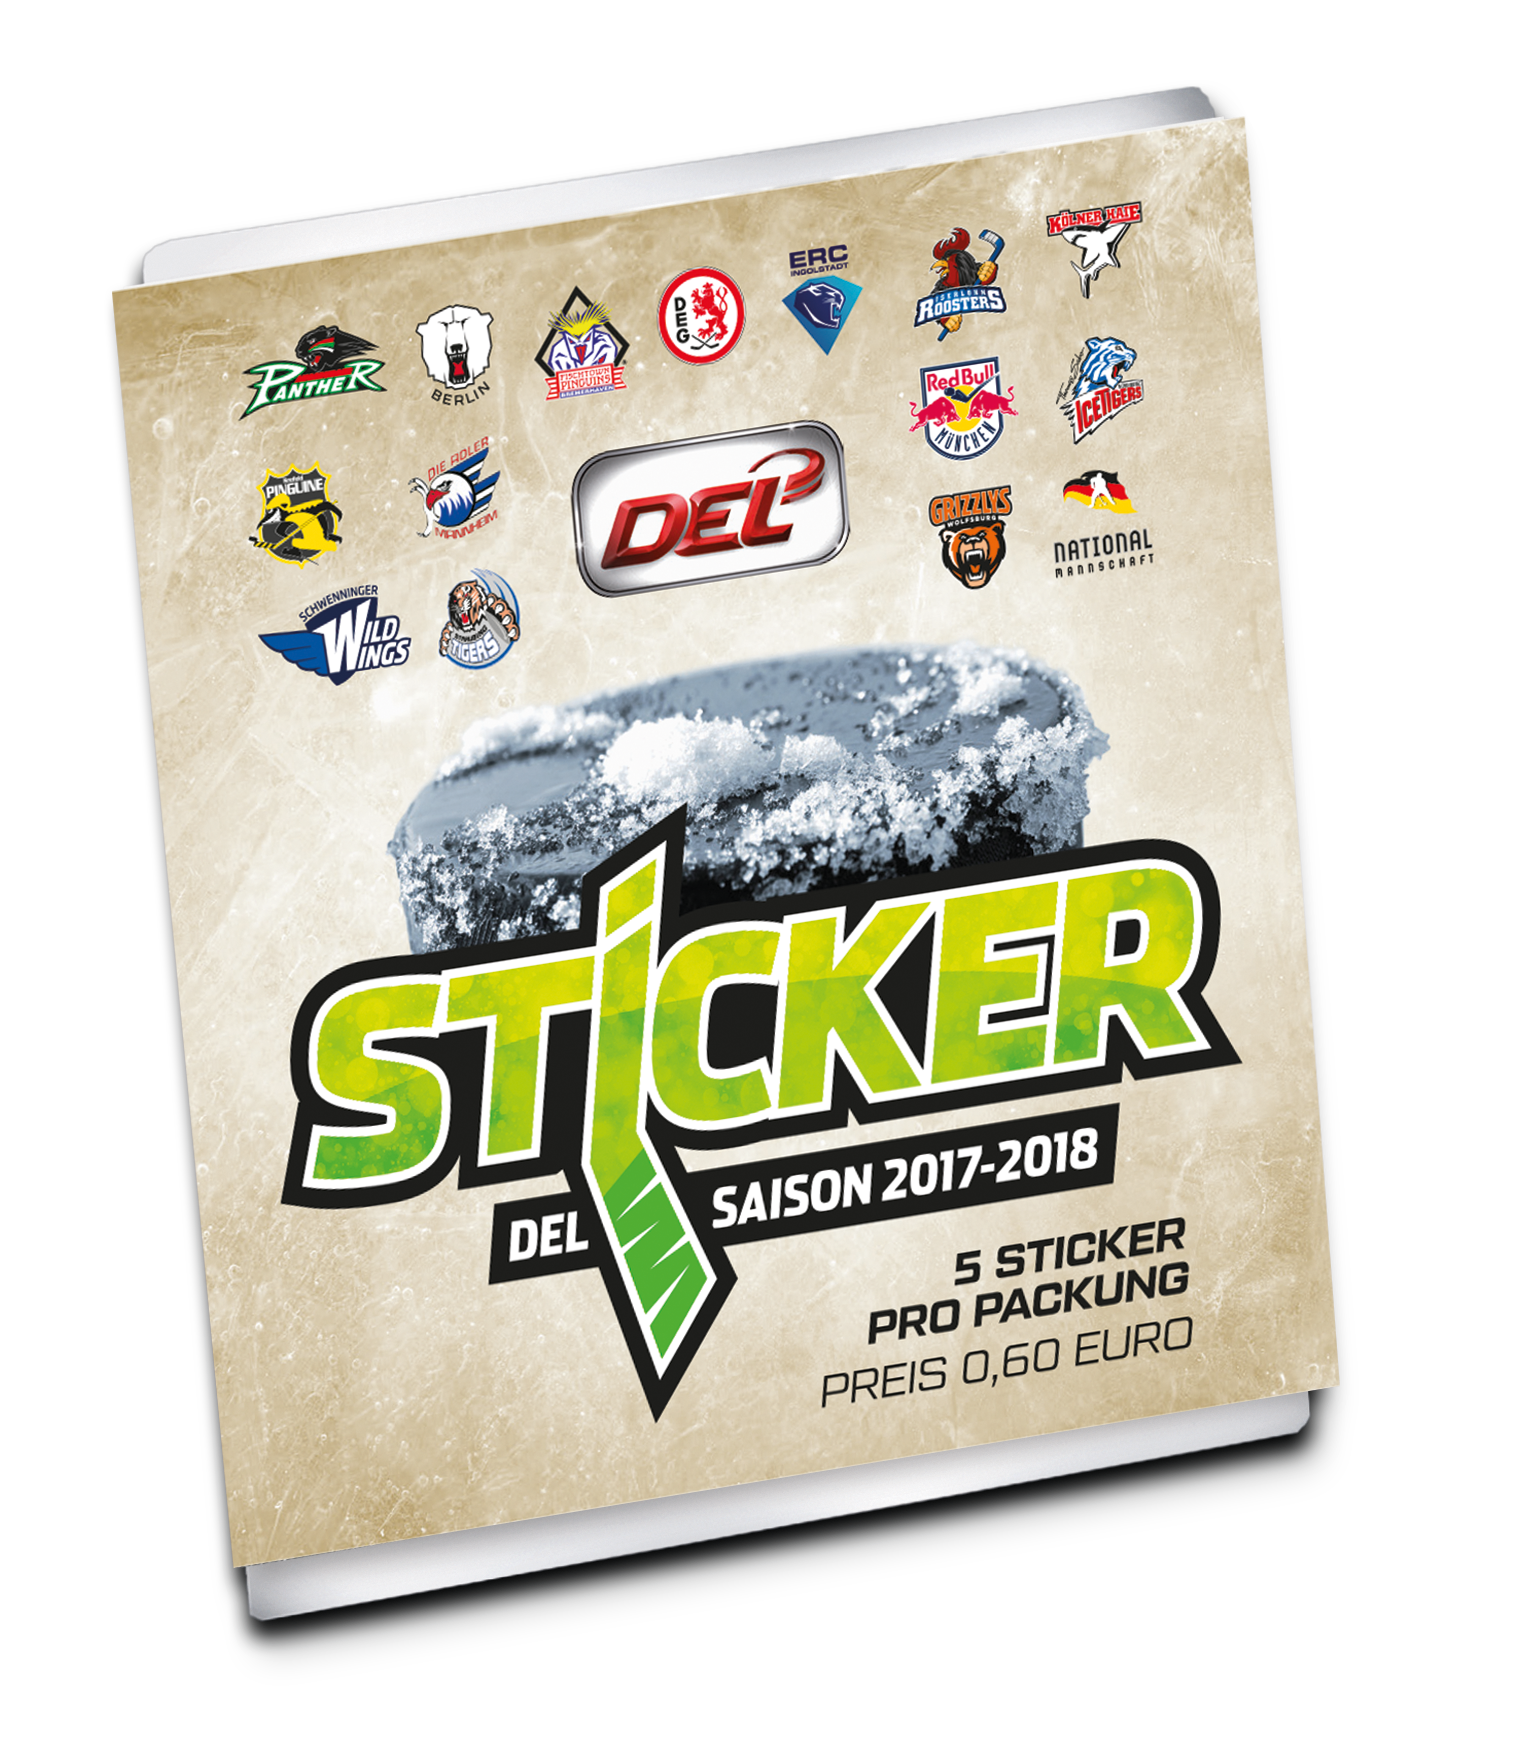 DEL Sticker Packung Saison 2017/2018